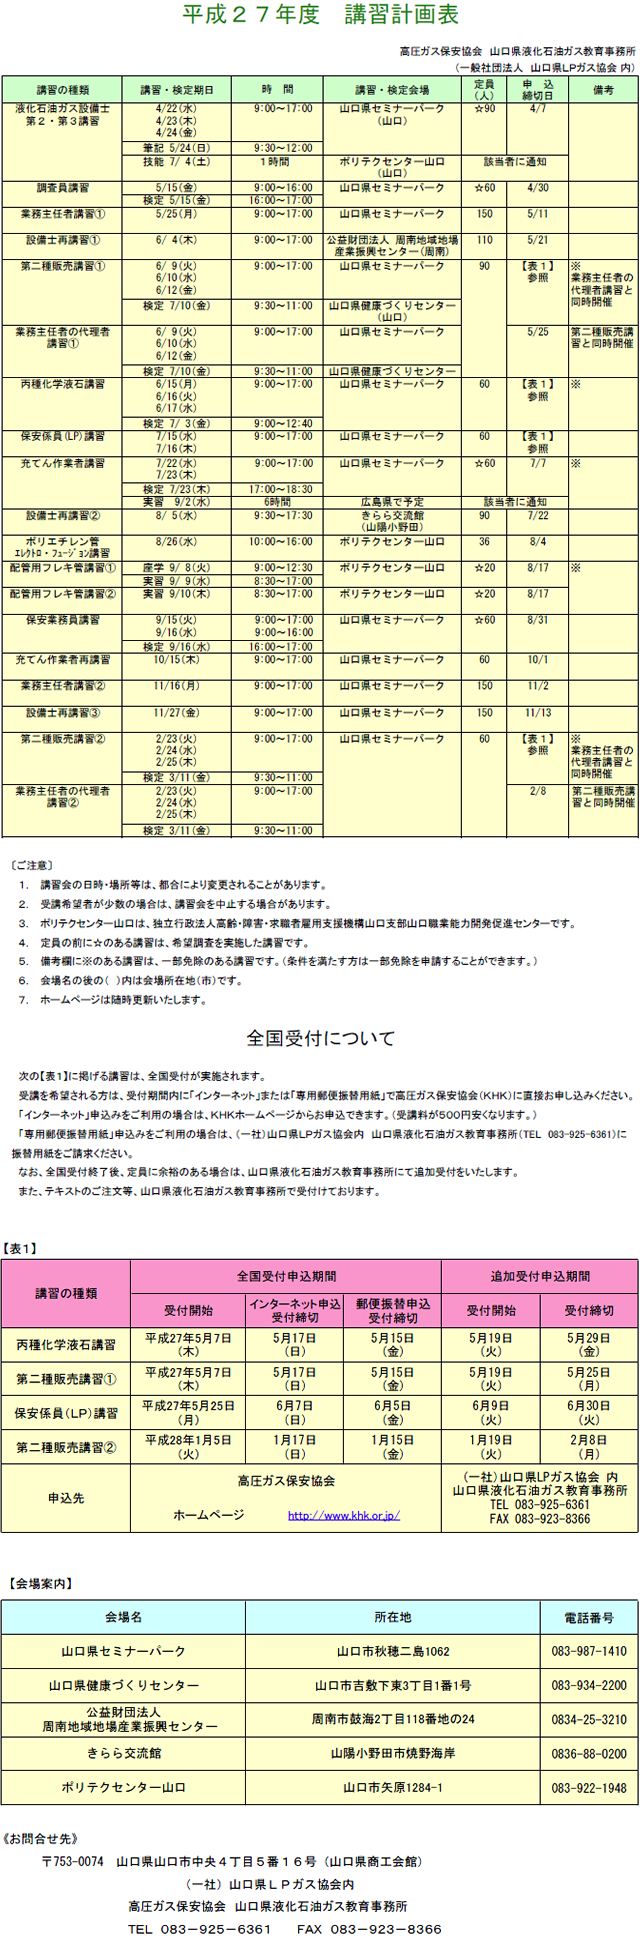 20150525-01.png